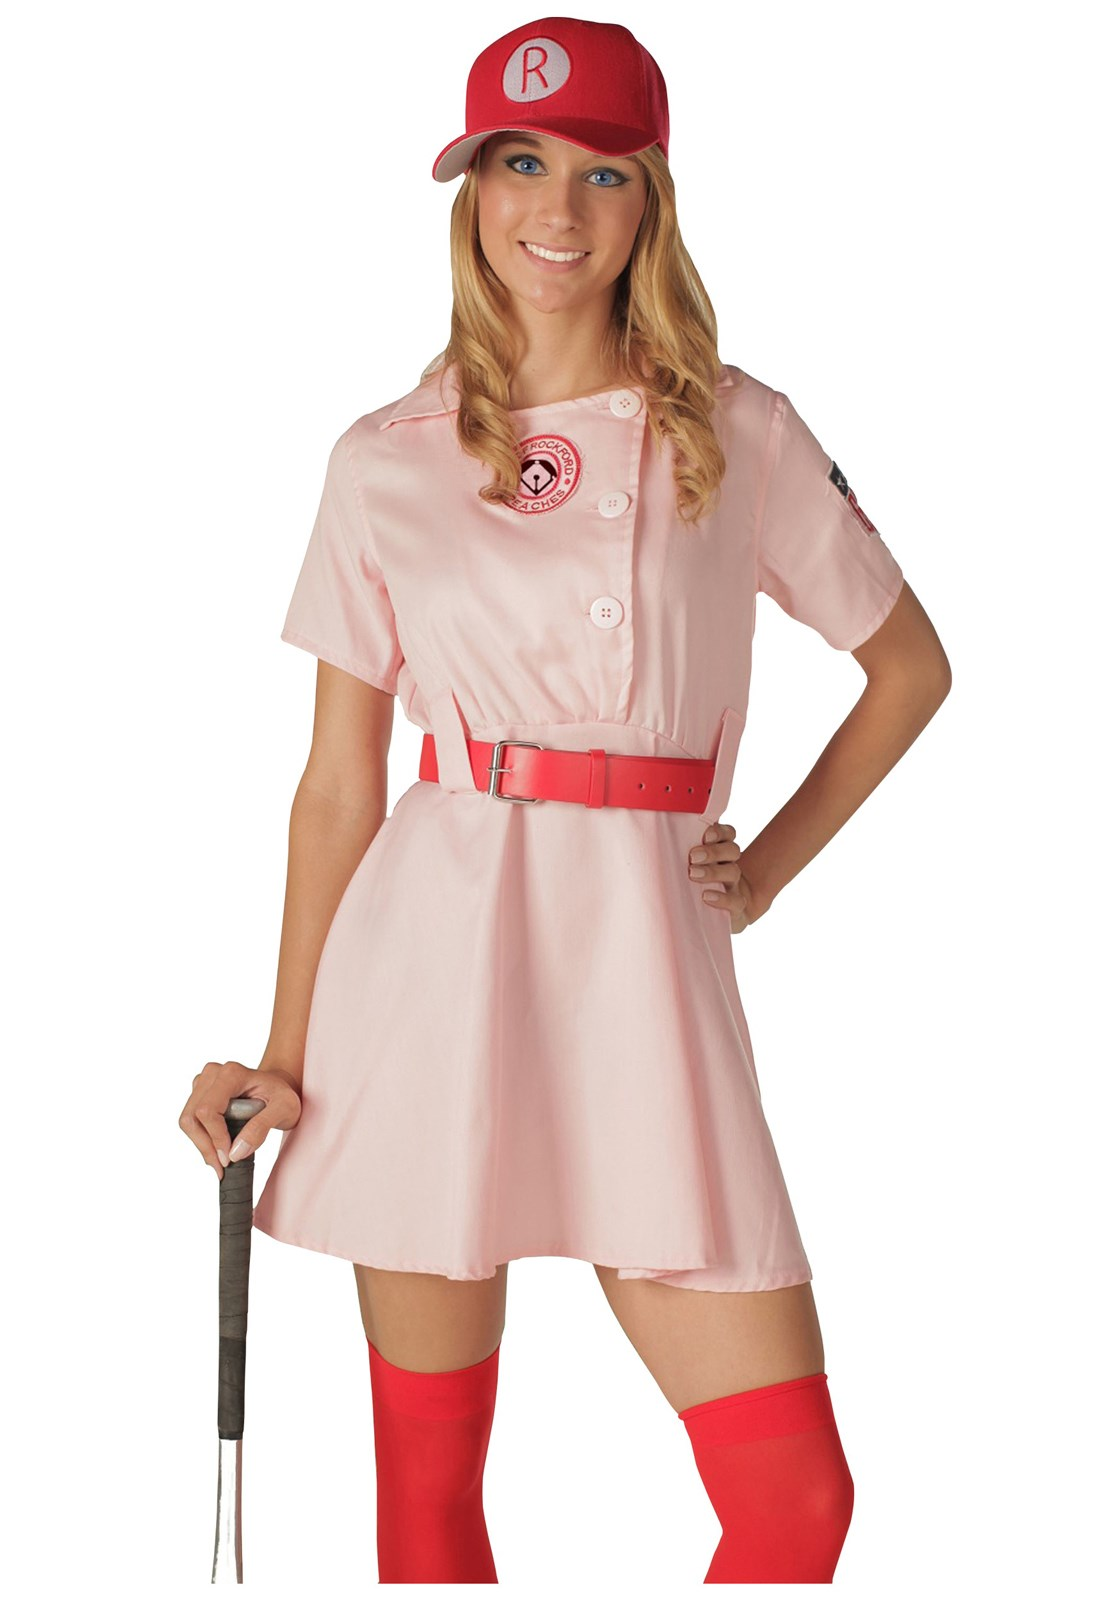 Sports Costumes for Women | BuyCostumes.com